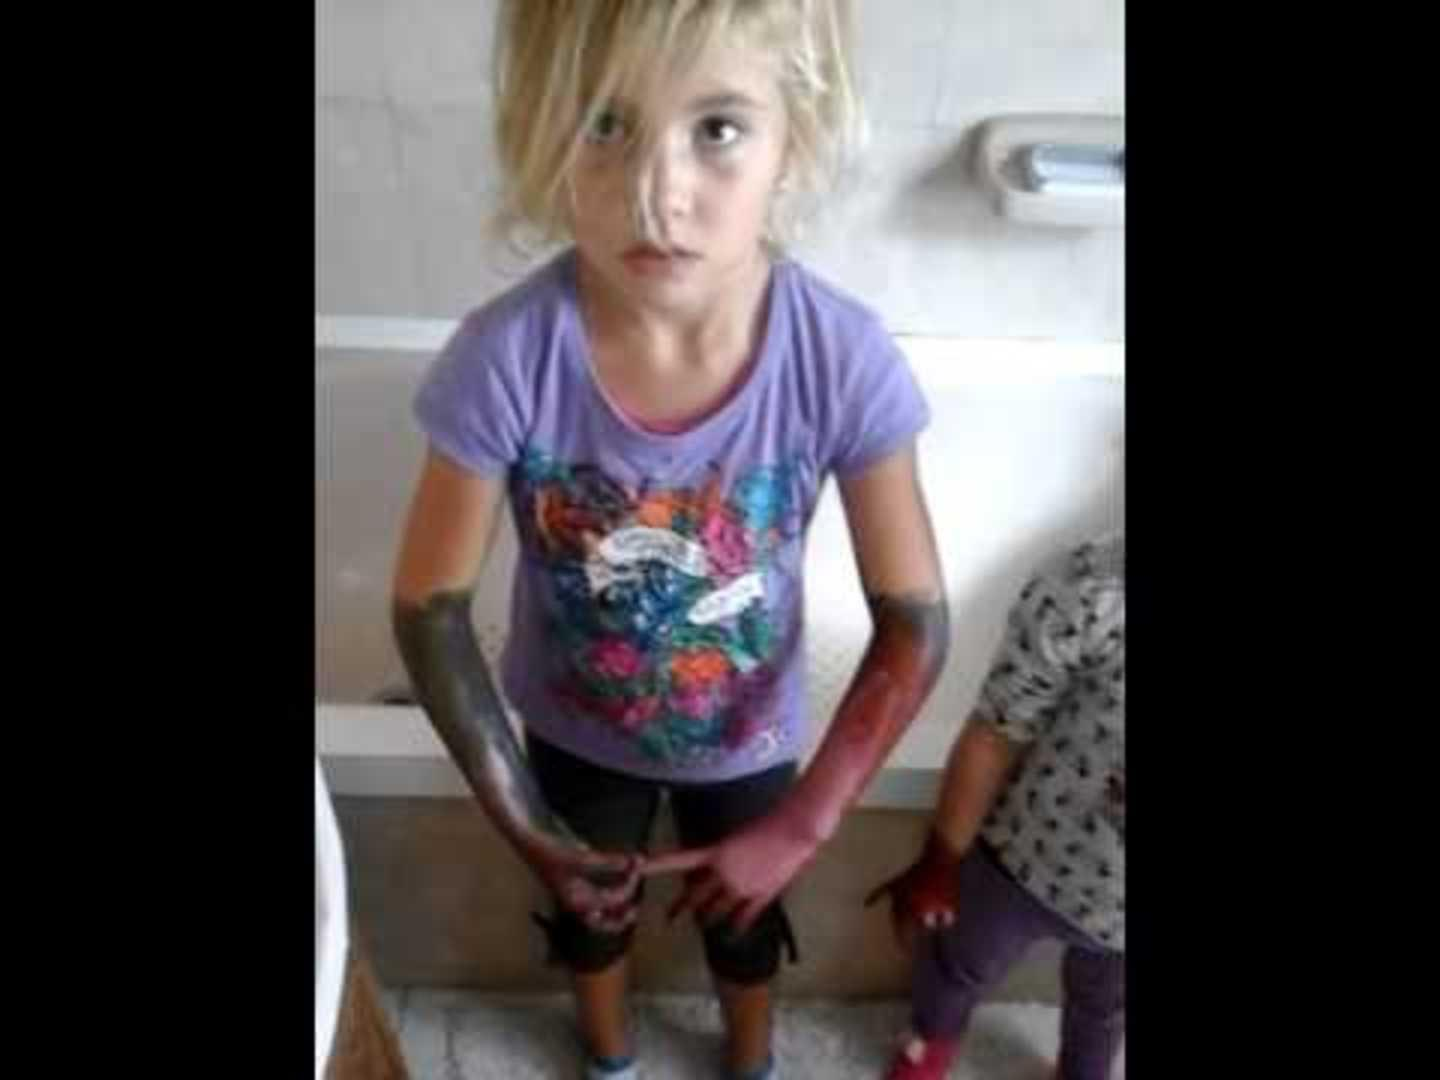 Little Girls Paint Each Others Arms